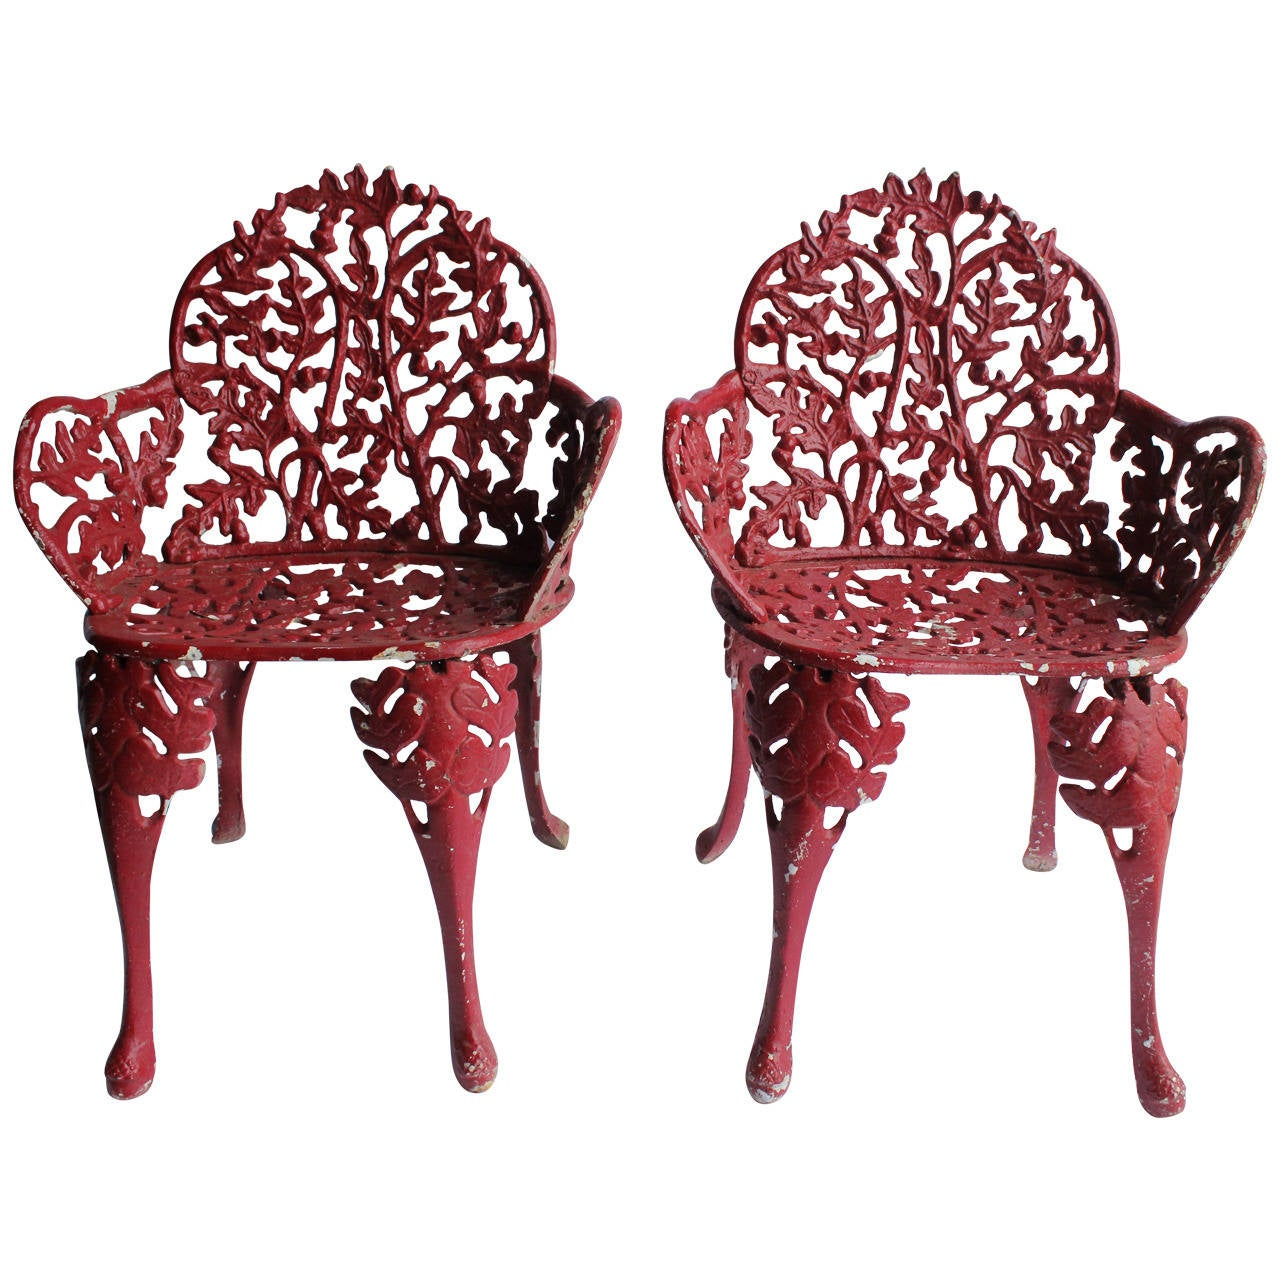 Antique Cast Iron Chairs : Stylish antique cast iron garden chairs at stdibs